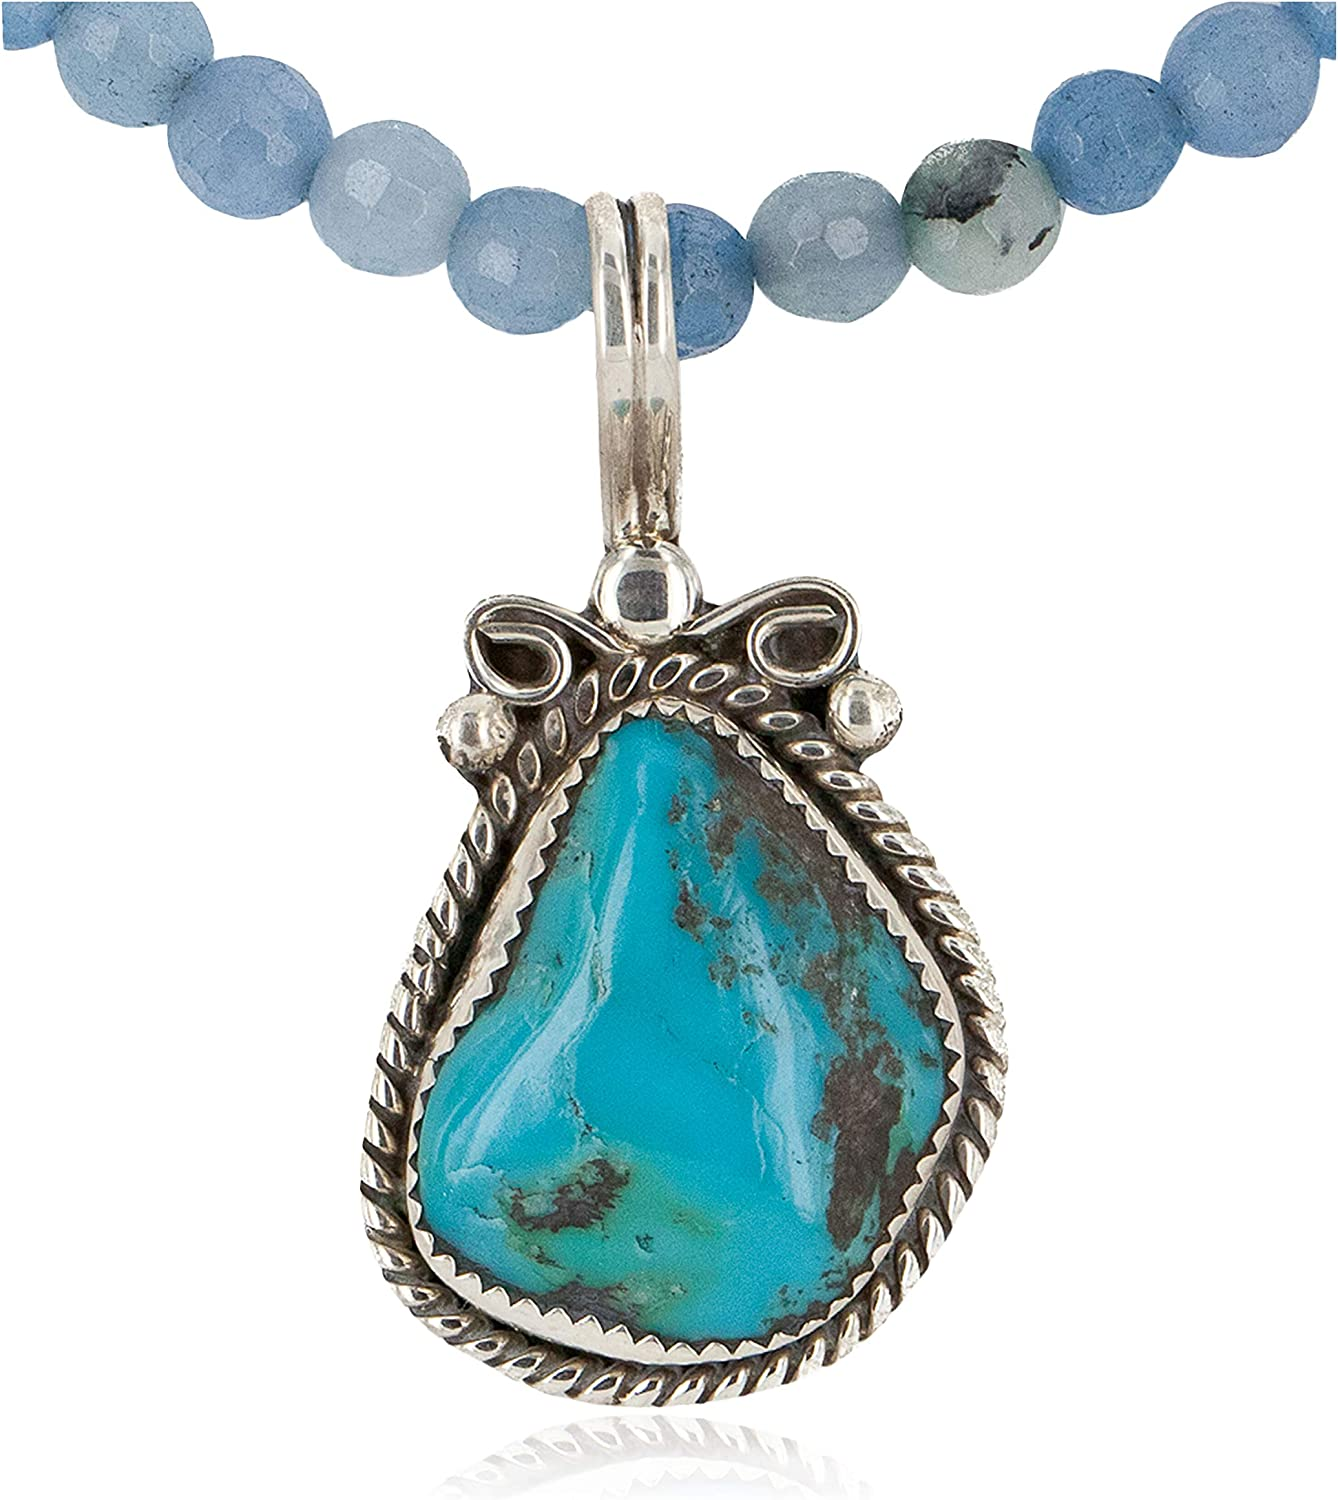 $400Tag Silver Certified Navajo Turquoise Blue Quartz Native Necklace 24394-2-16083-7 gemacht durch Loma Siiva